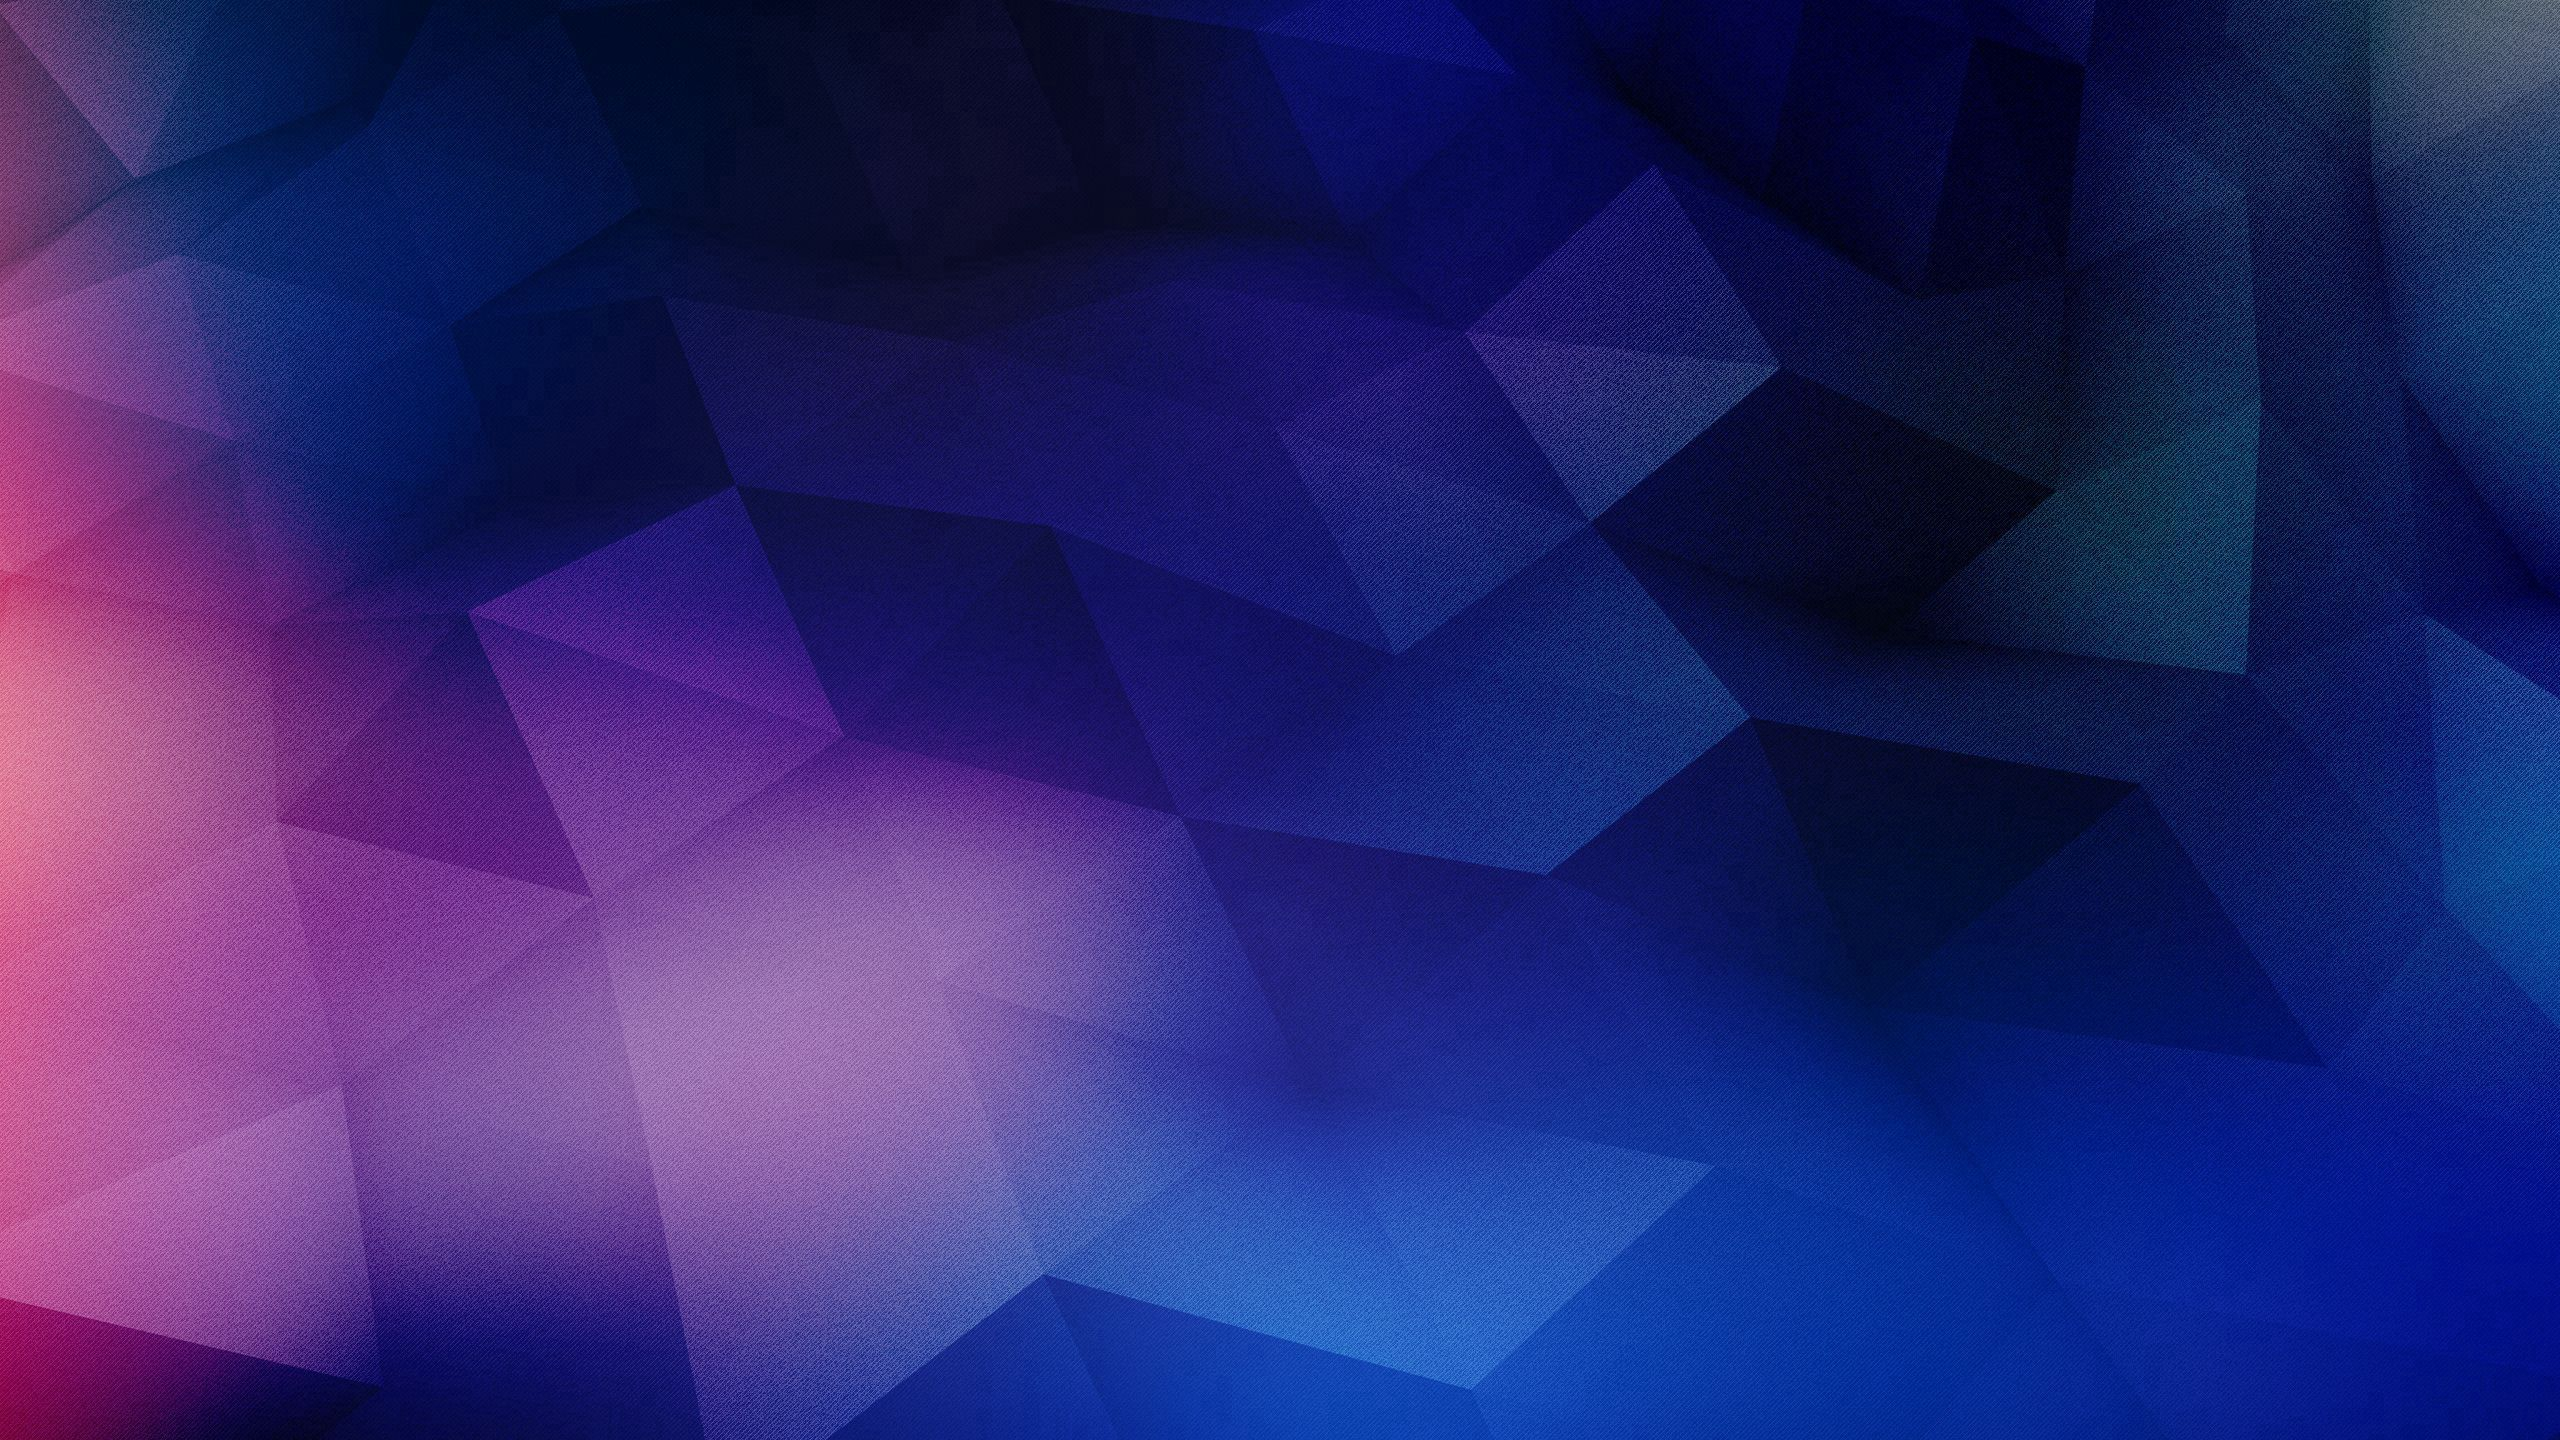 73152 download wallpaper Abstract, Texture, Triangles screensavers and pictures for free